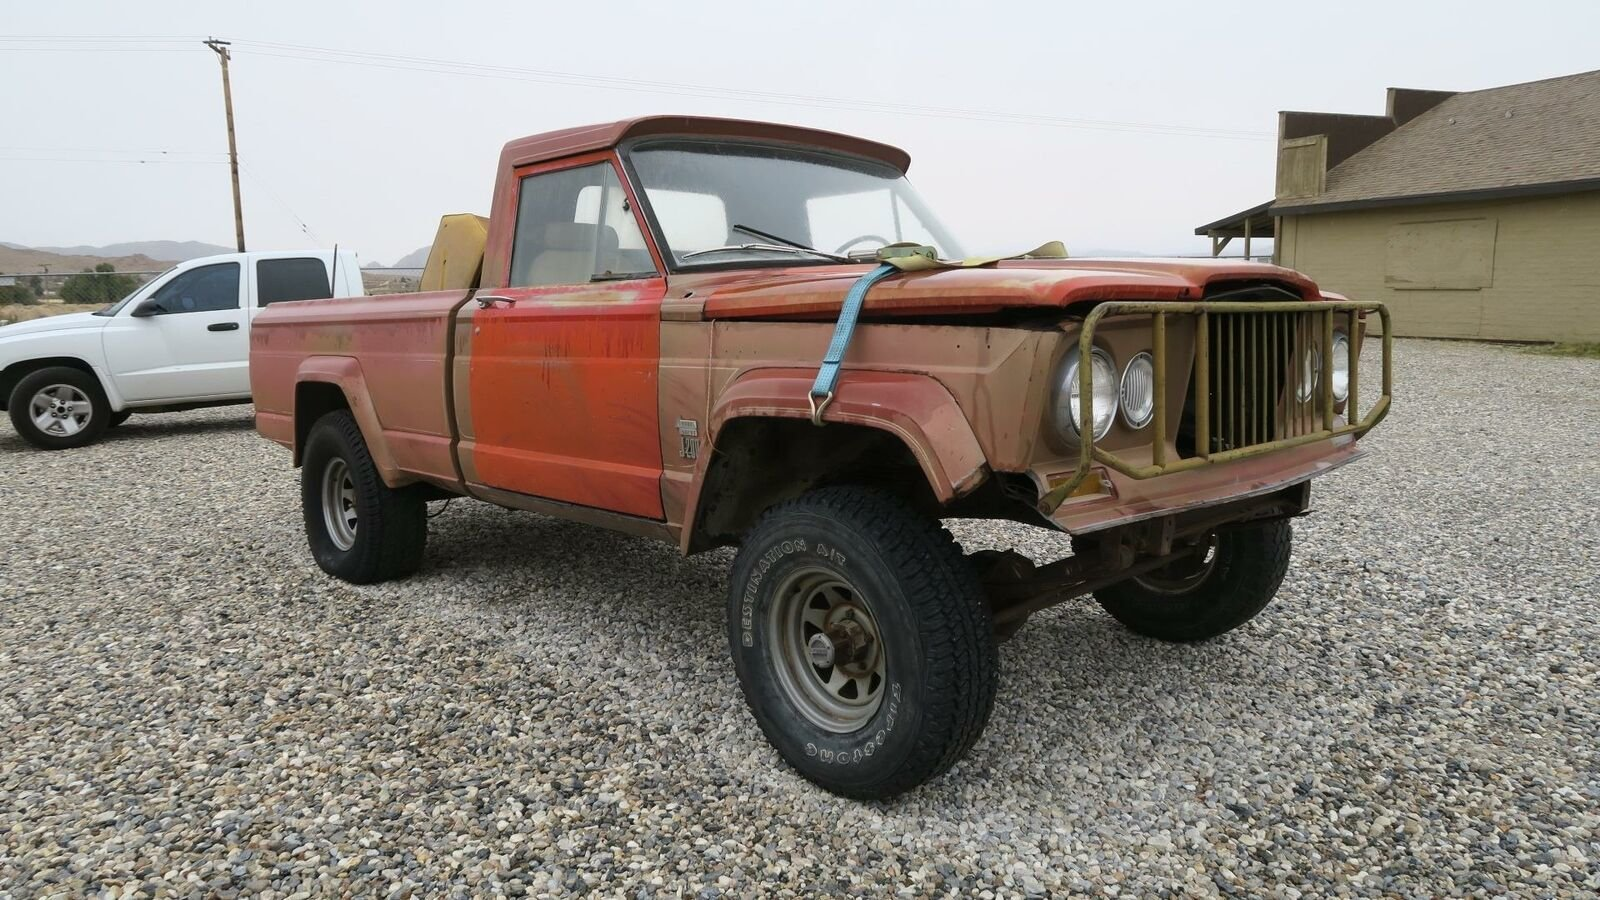 1964 AMC Jeep GLADIATOR 4X4 Puck Up TRUCK Project  $3.5k For Sale (picture 1 of 6)